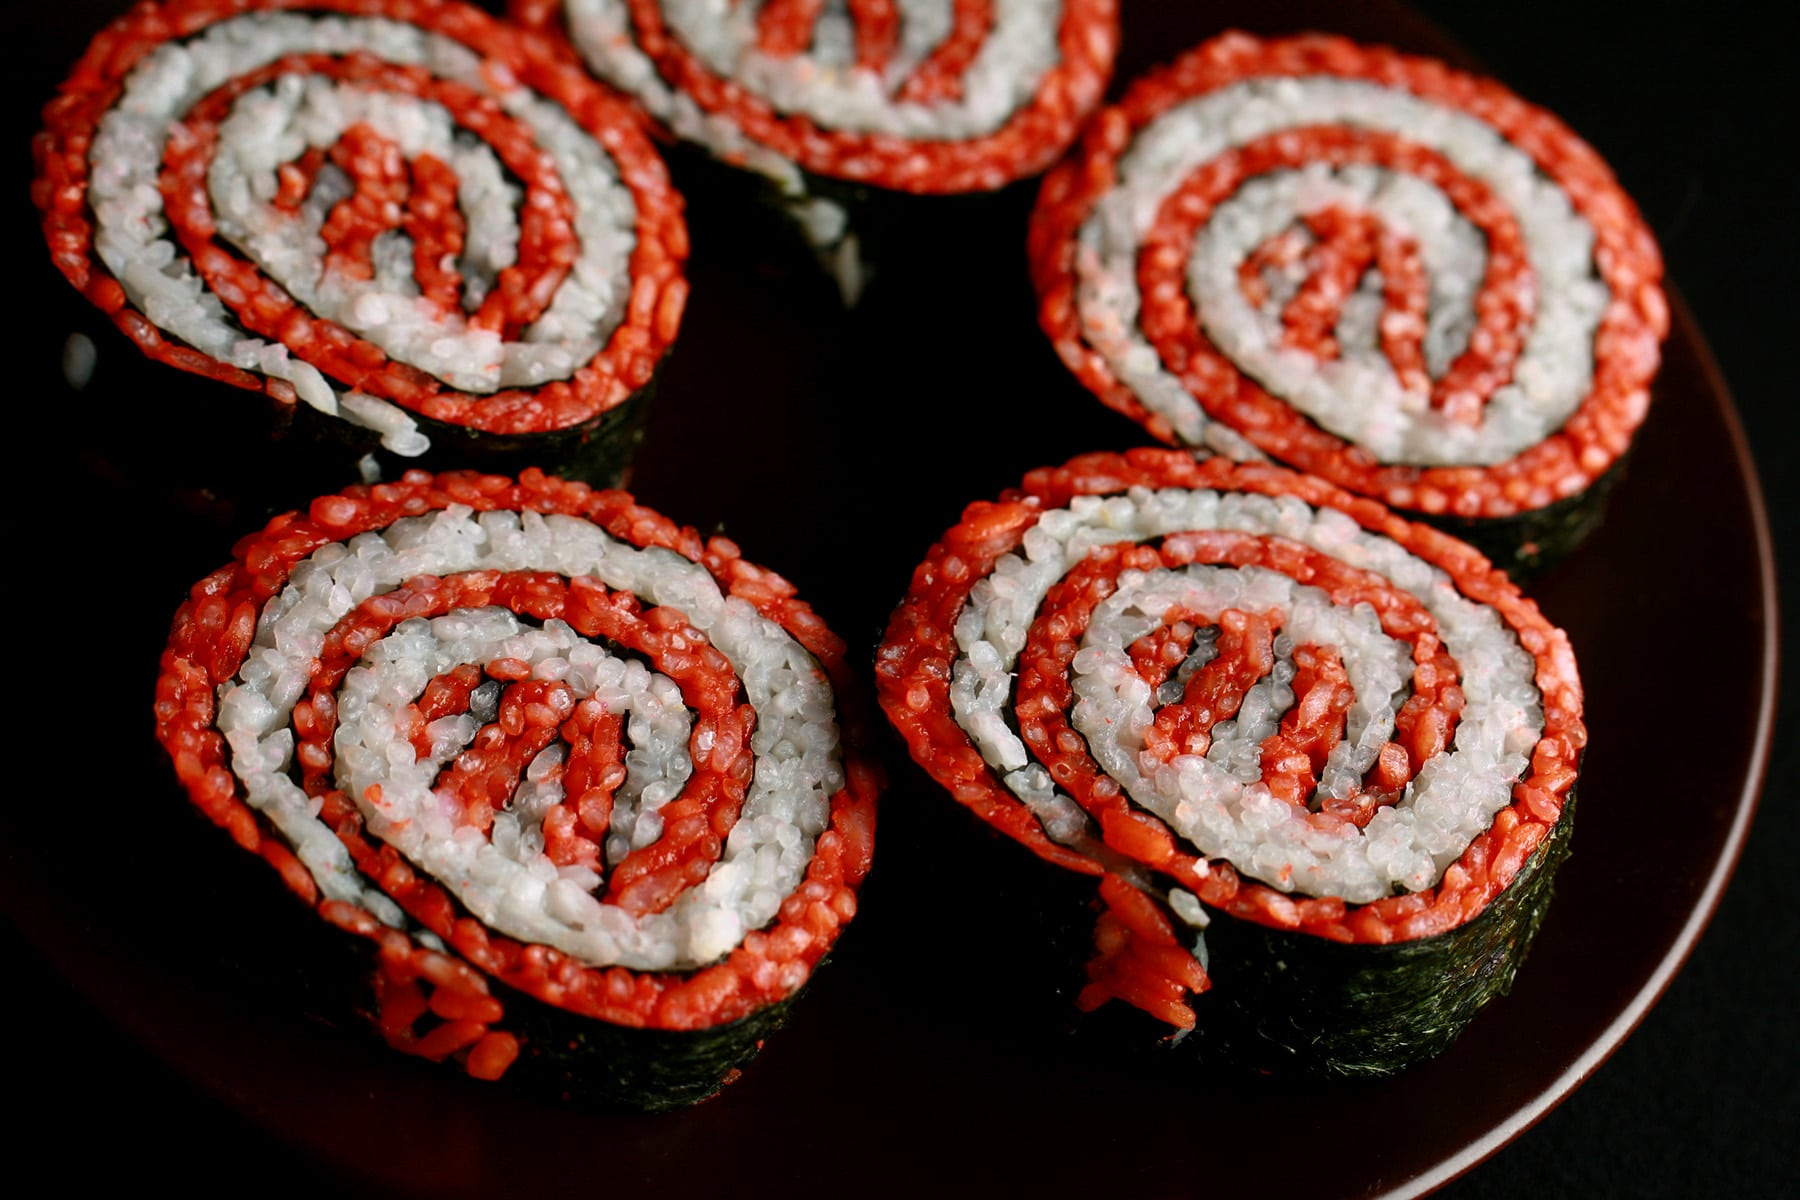 A close up view of a plate of sushi shaped to look like the Masterchef logo.